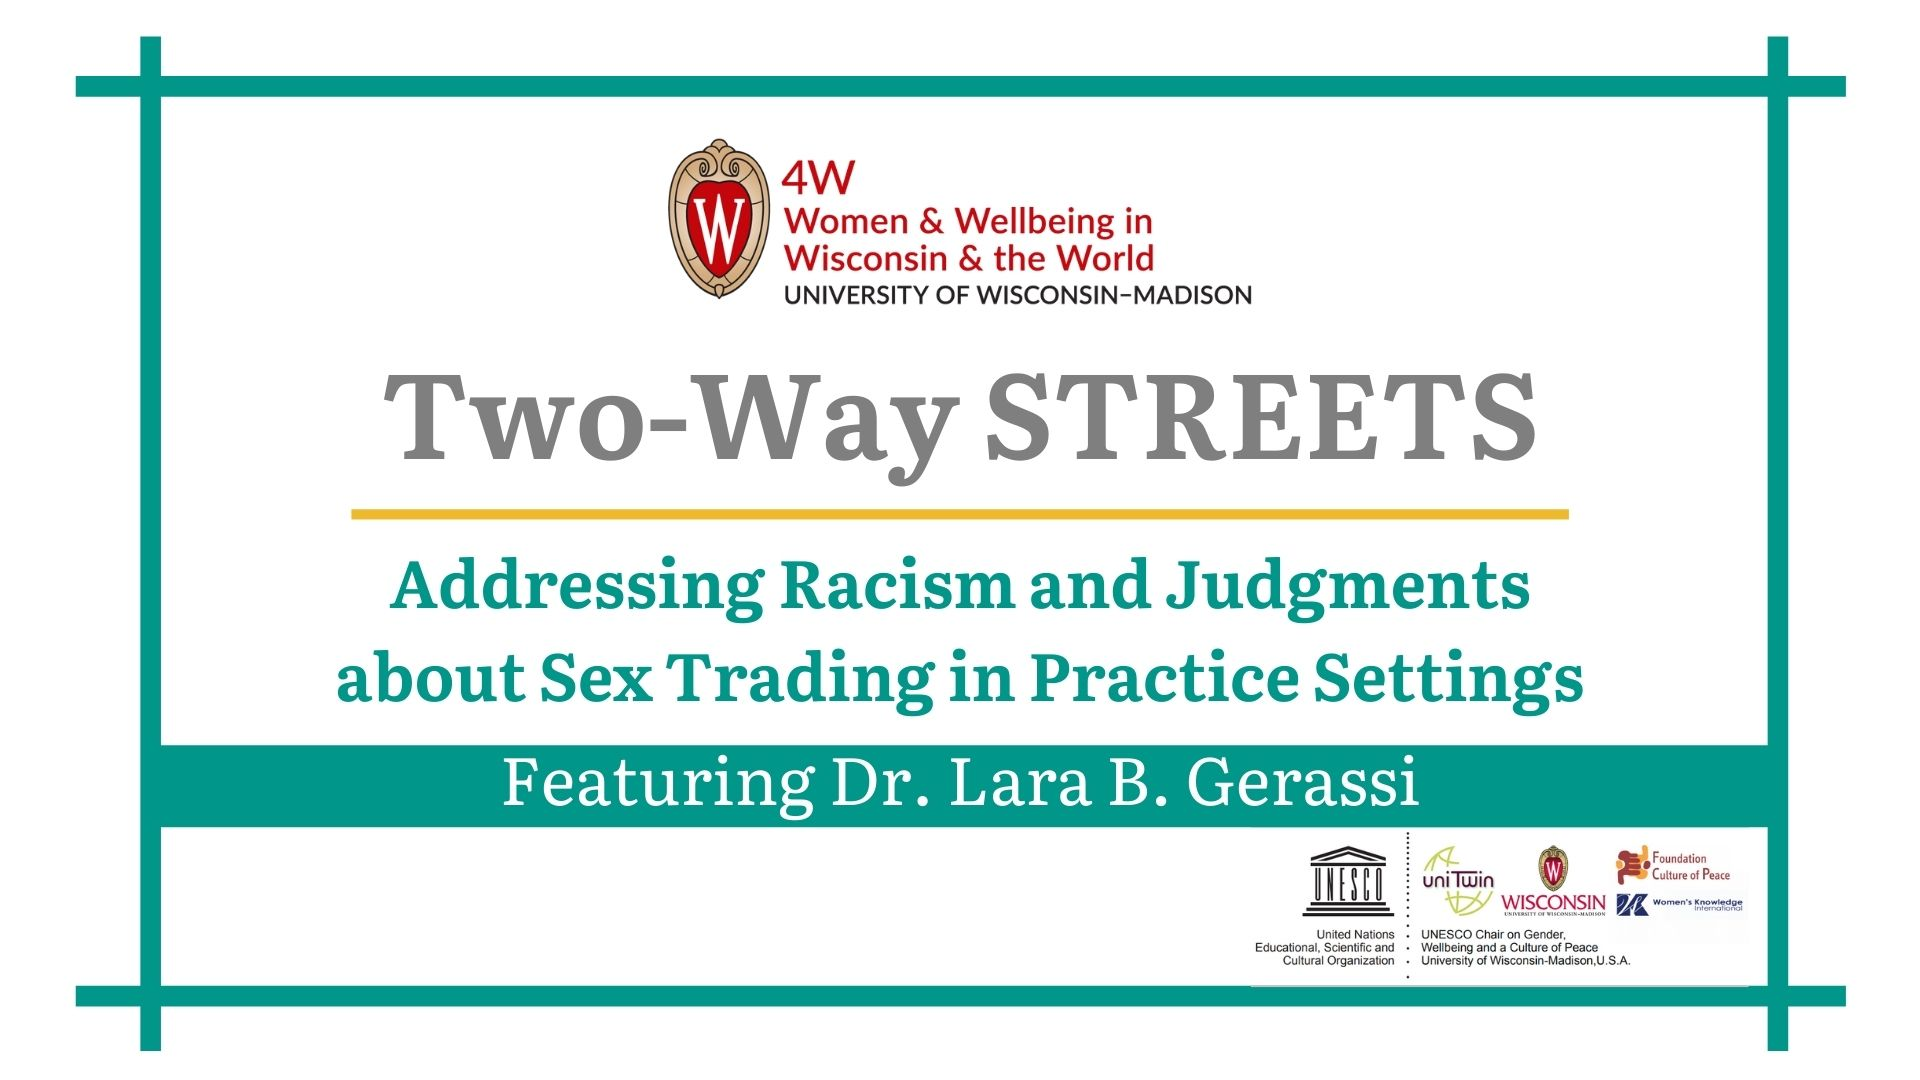 Two-Way STREETS webinar promotional image.